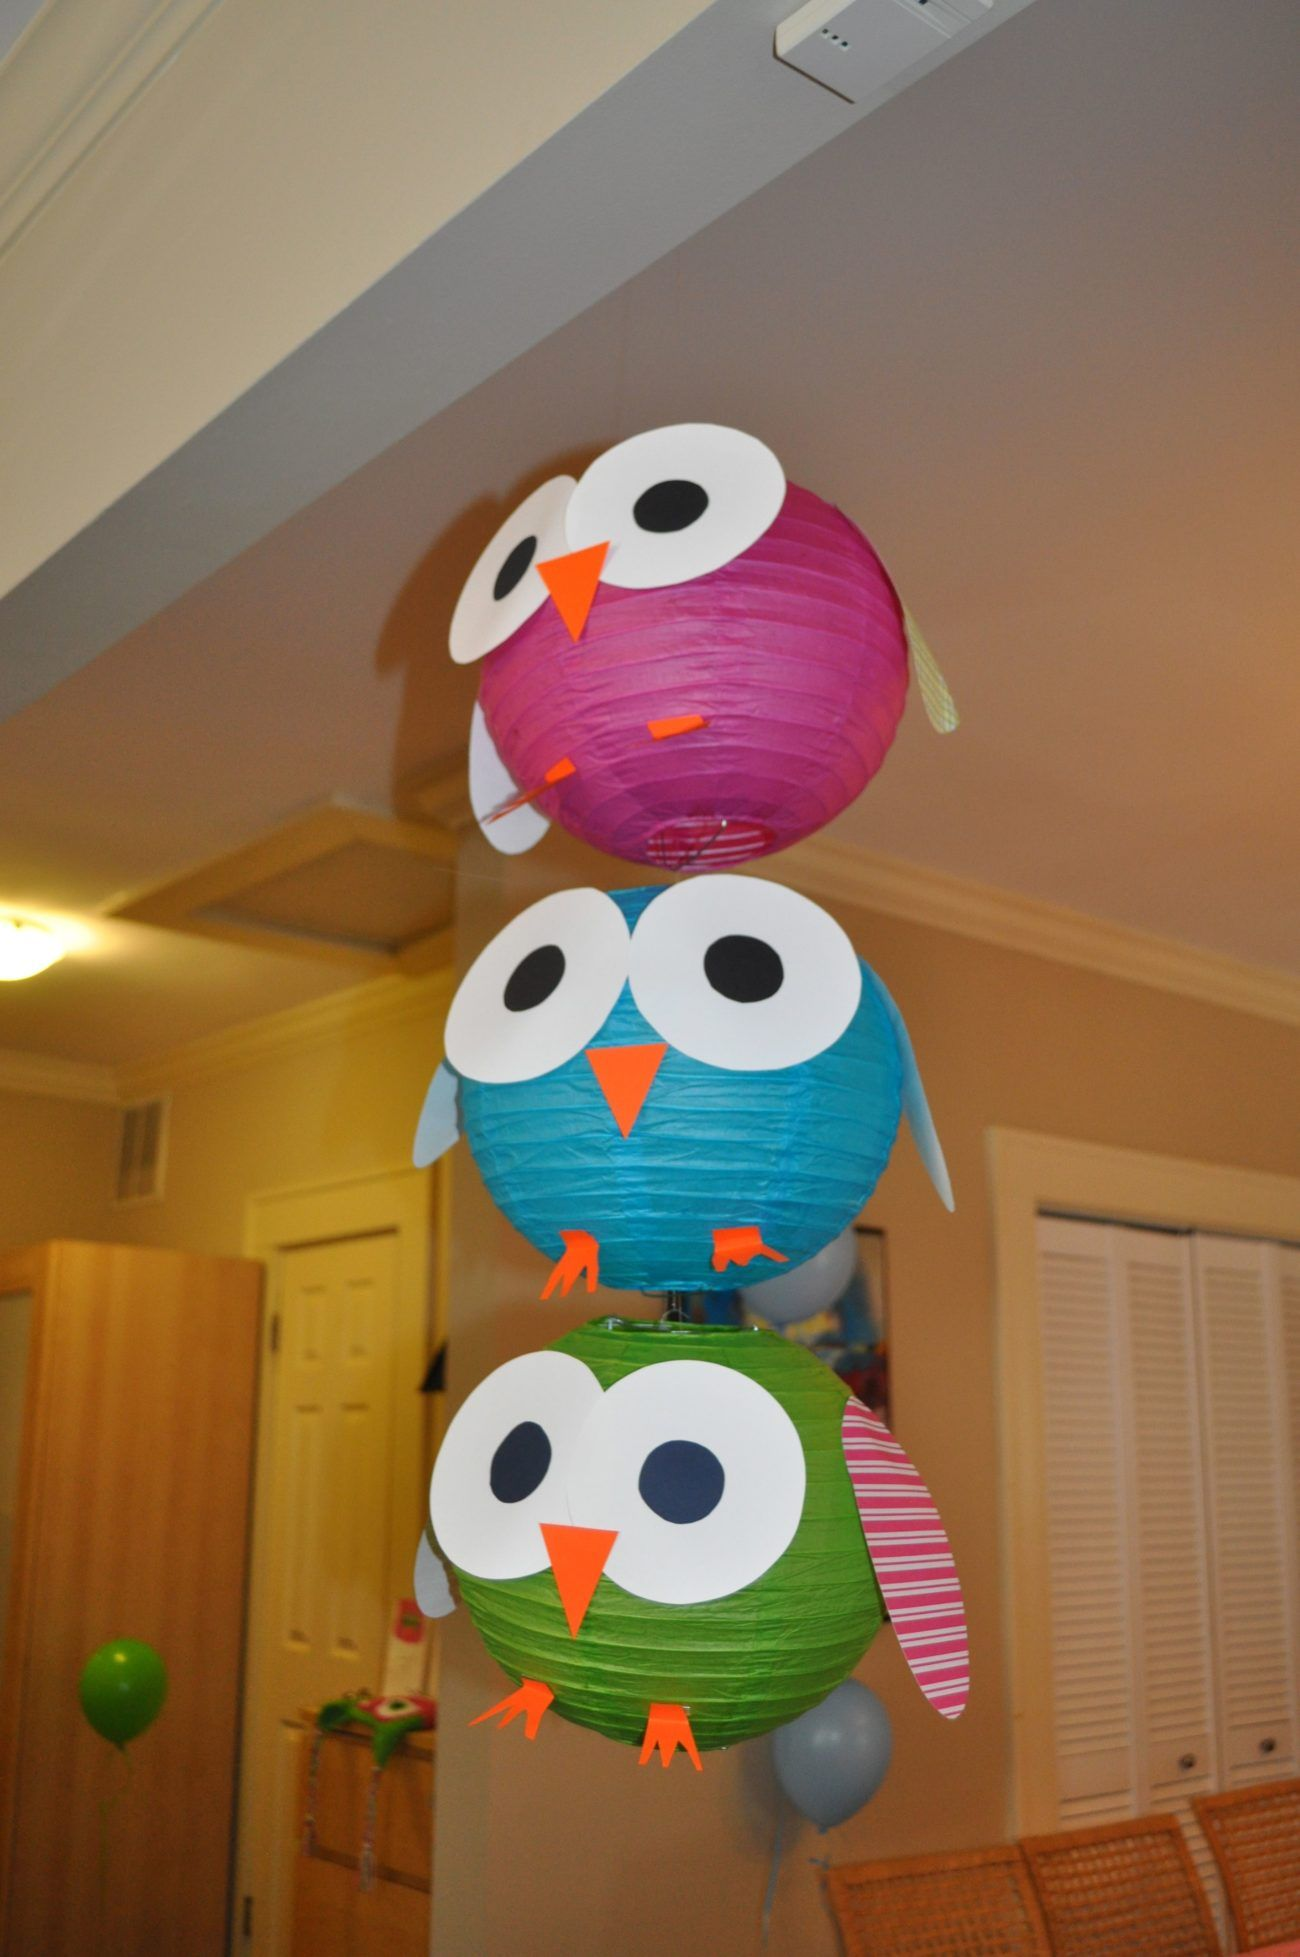 23 Owl Themed Classroom Ideas That Your Students Will Find A Hoot